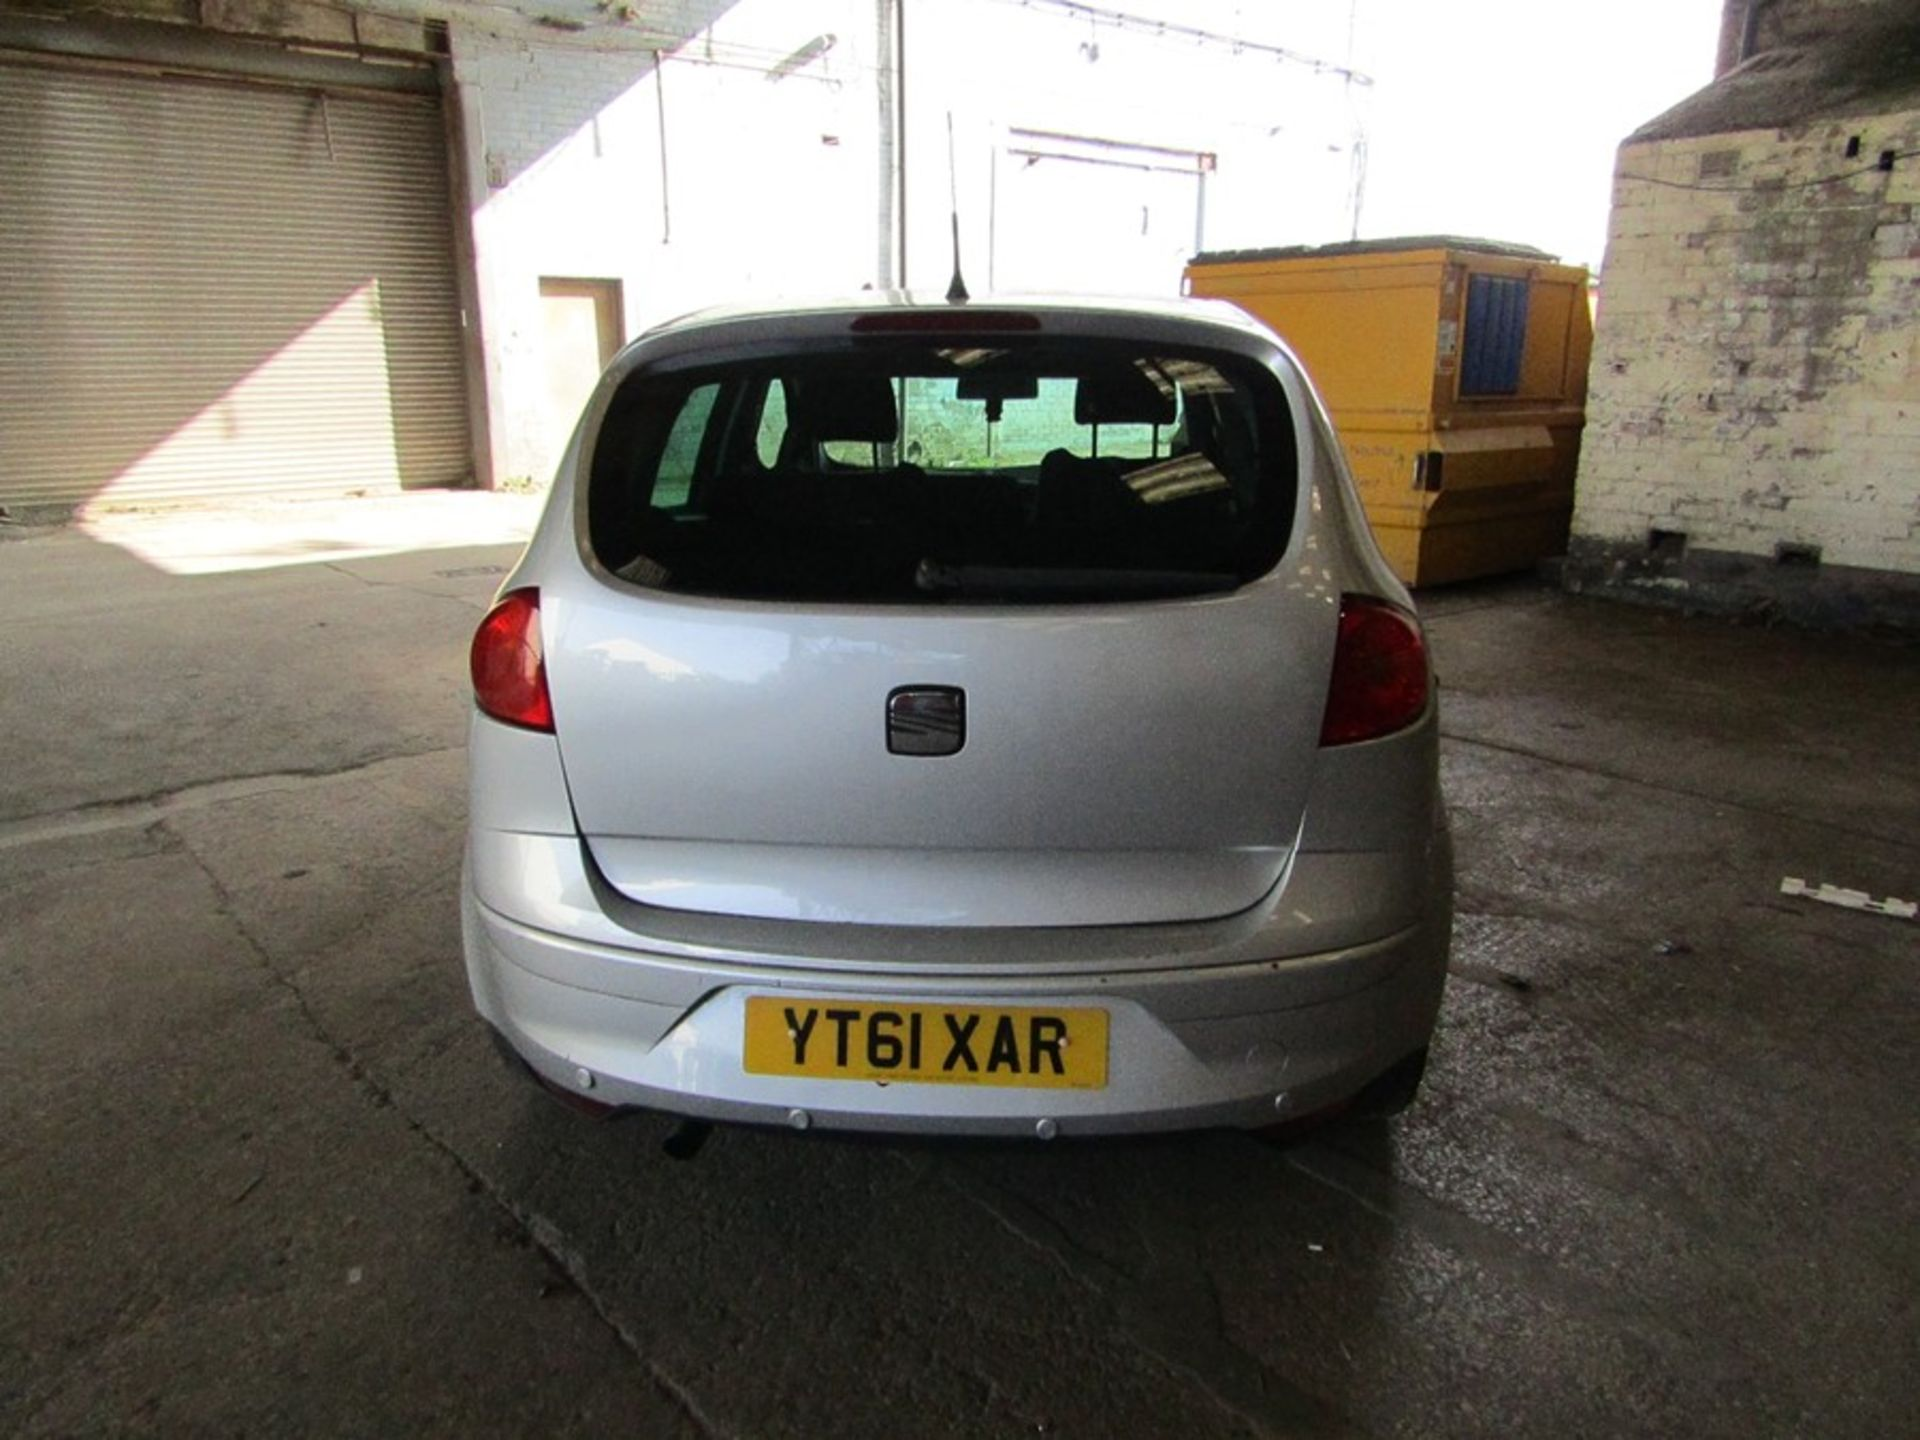 2011 Seat Althea SE CR TDI Auto, 1.6TDI, 47,678 miles (unchecked but appears to be inline with the - Image 3 of 17